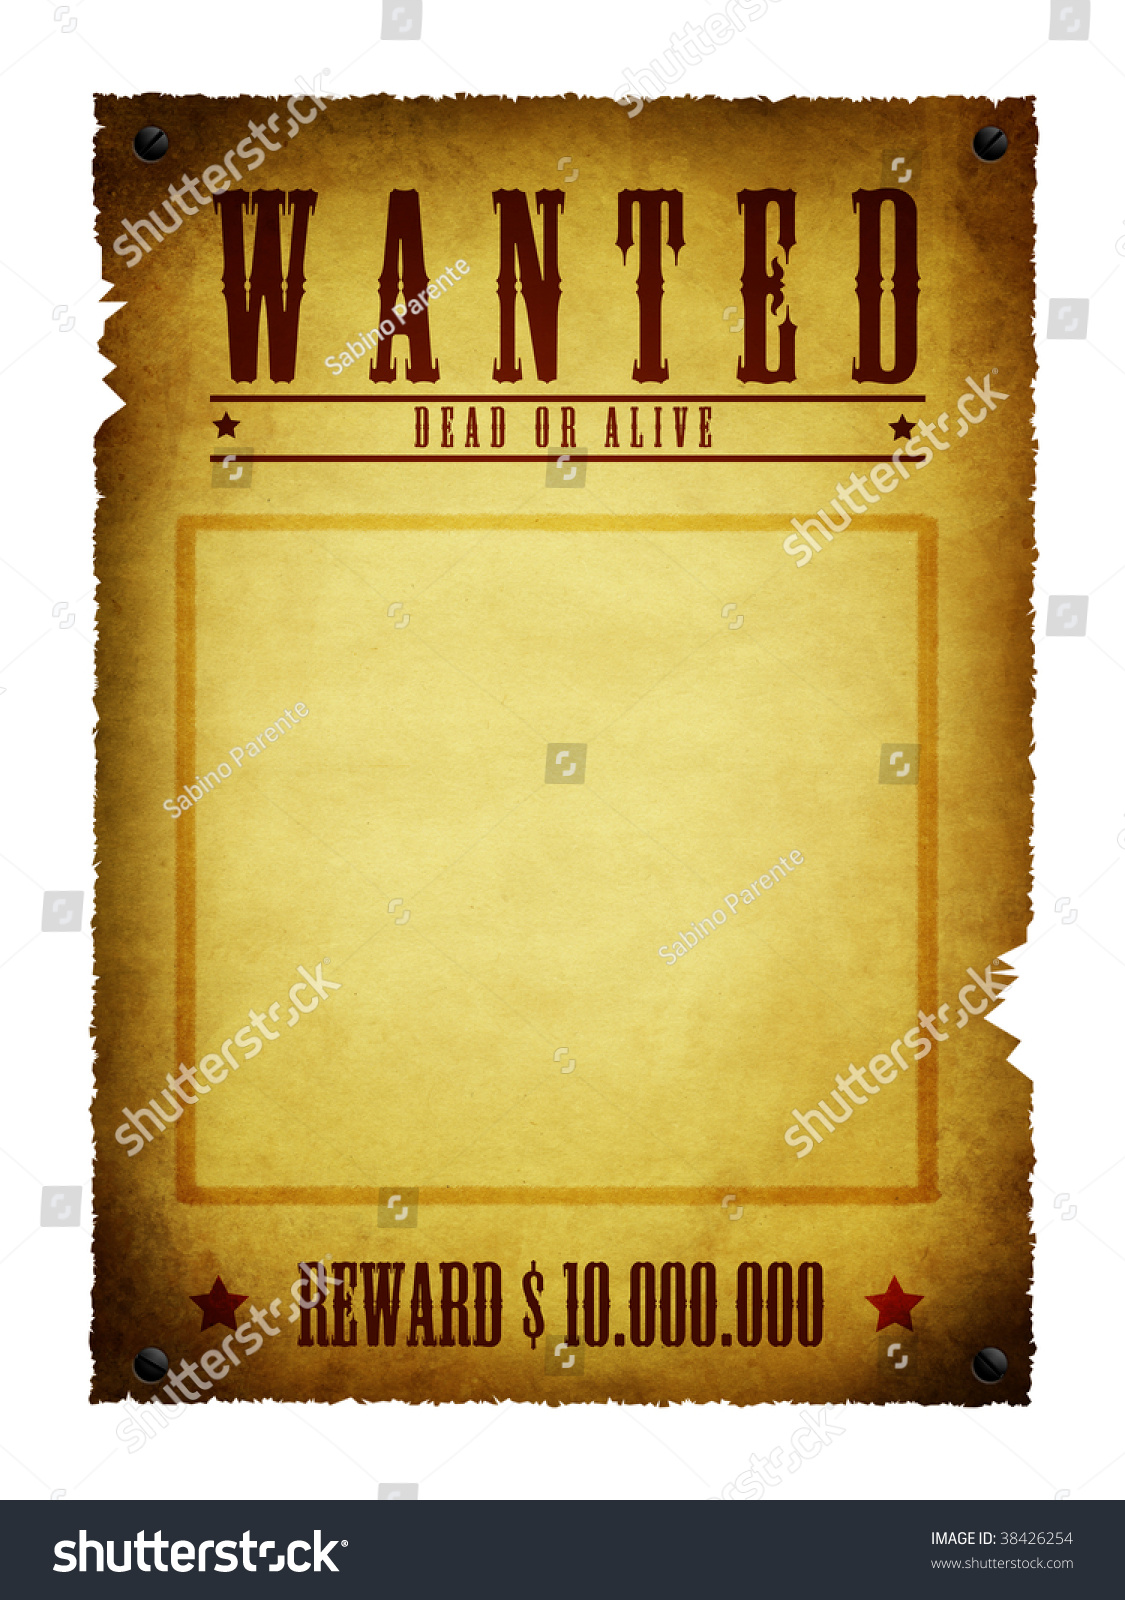 Royalty-free An illustration of a wanted retro poster #38426254 Stock Photo Avopix.com